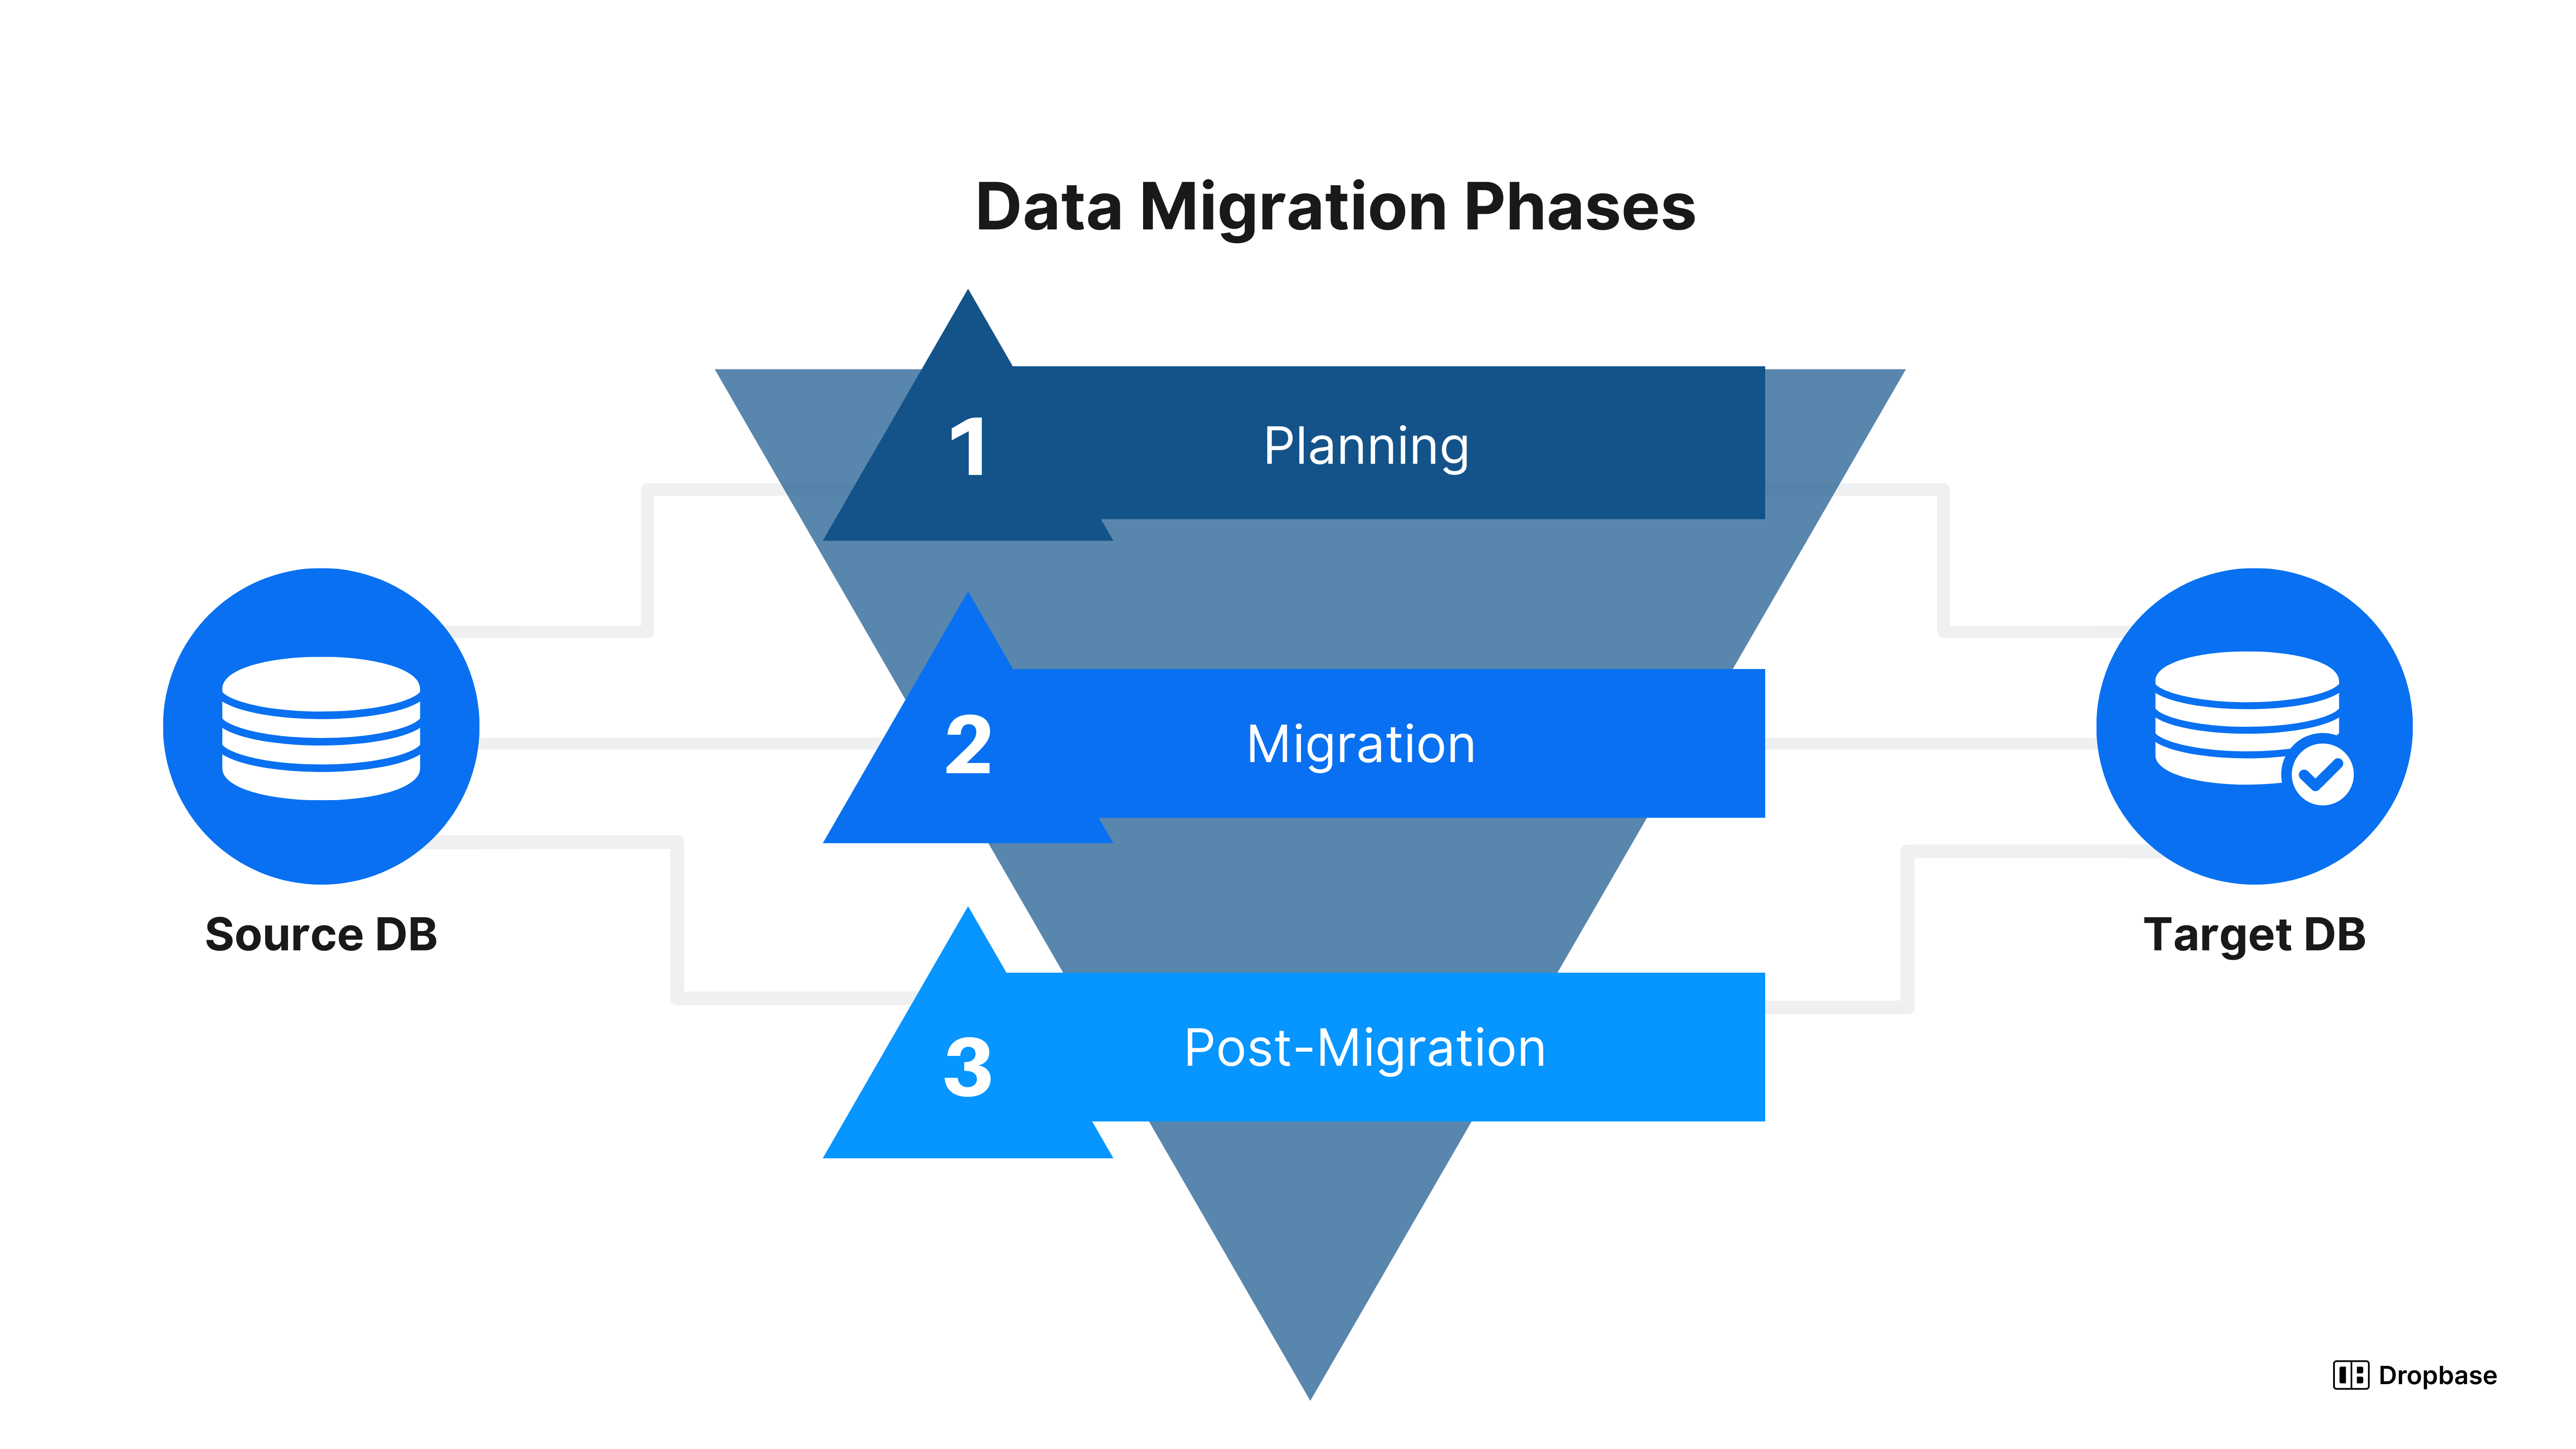 Data migration phases